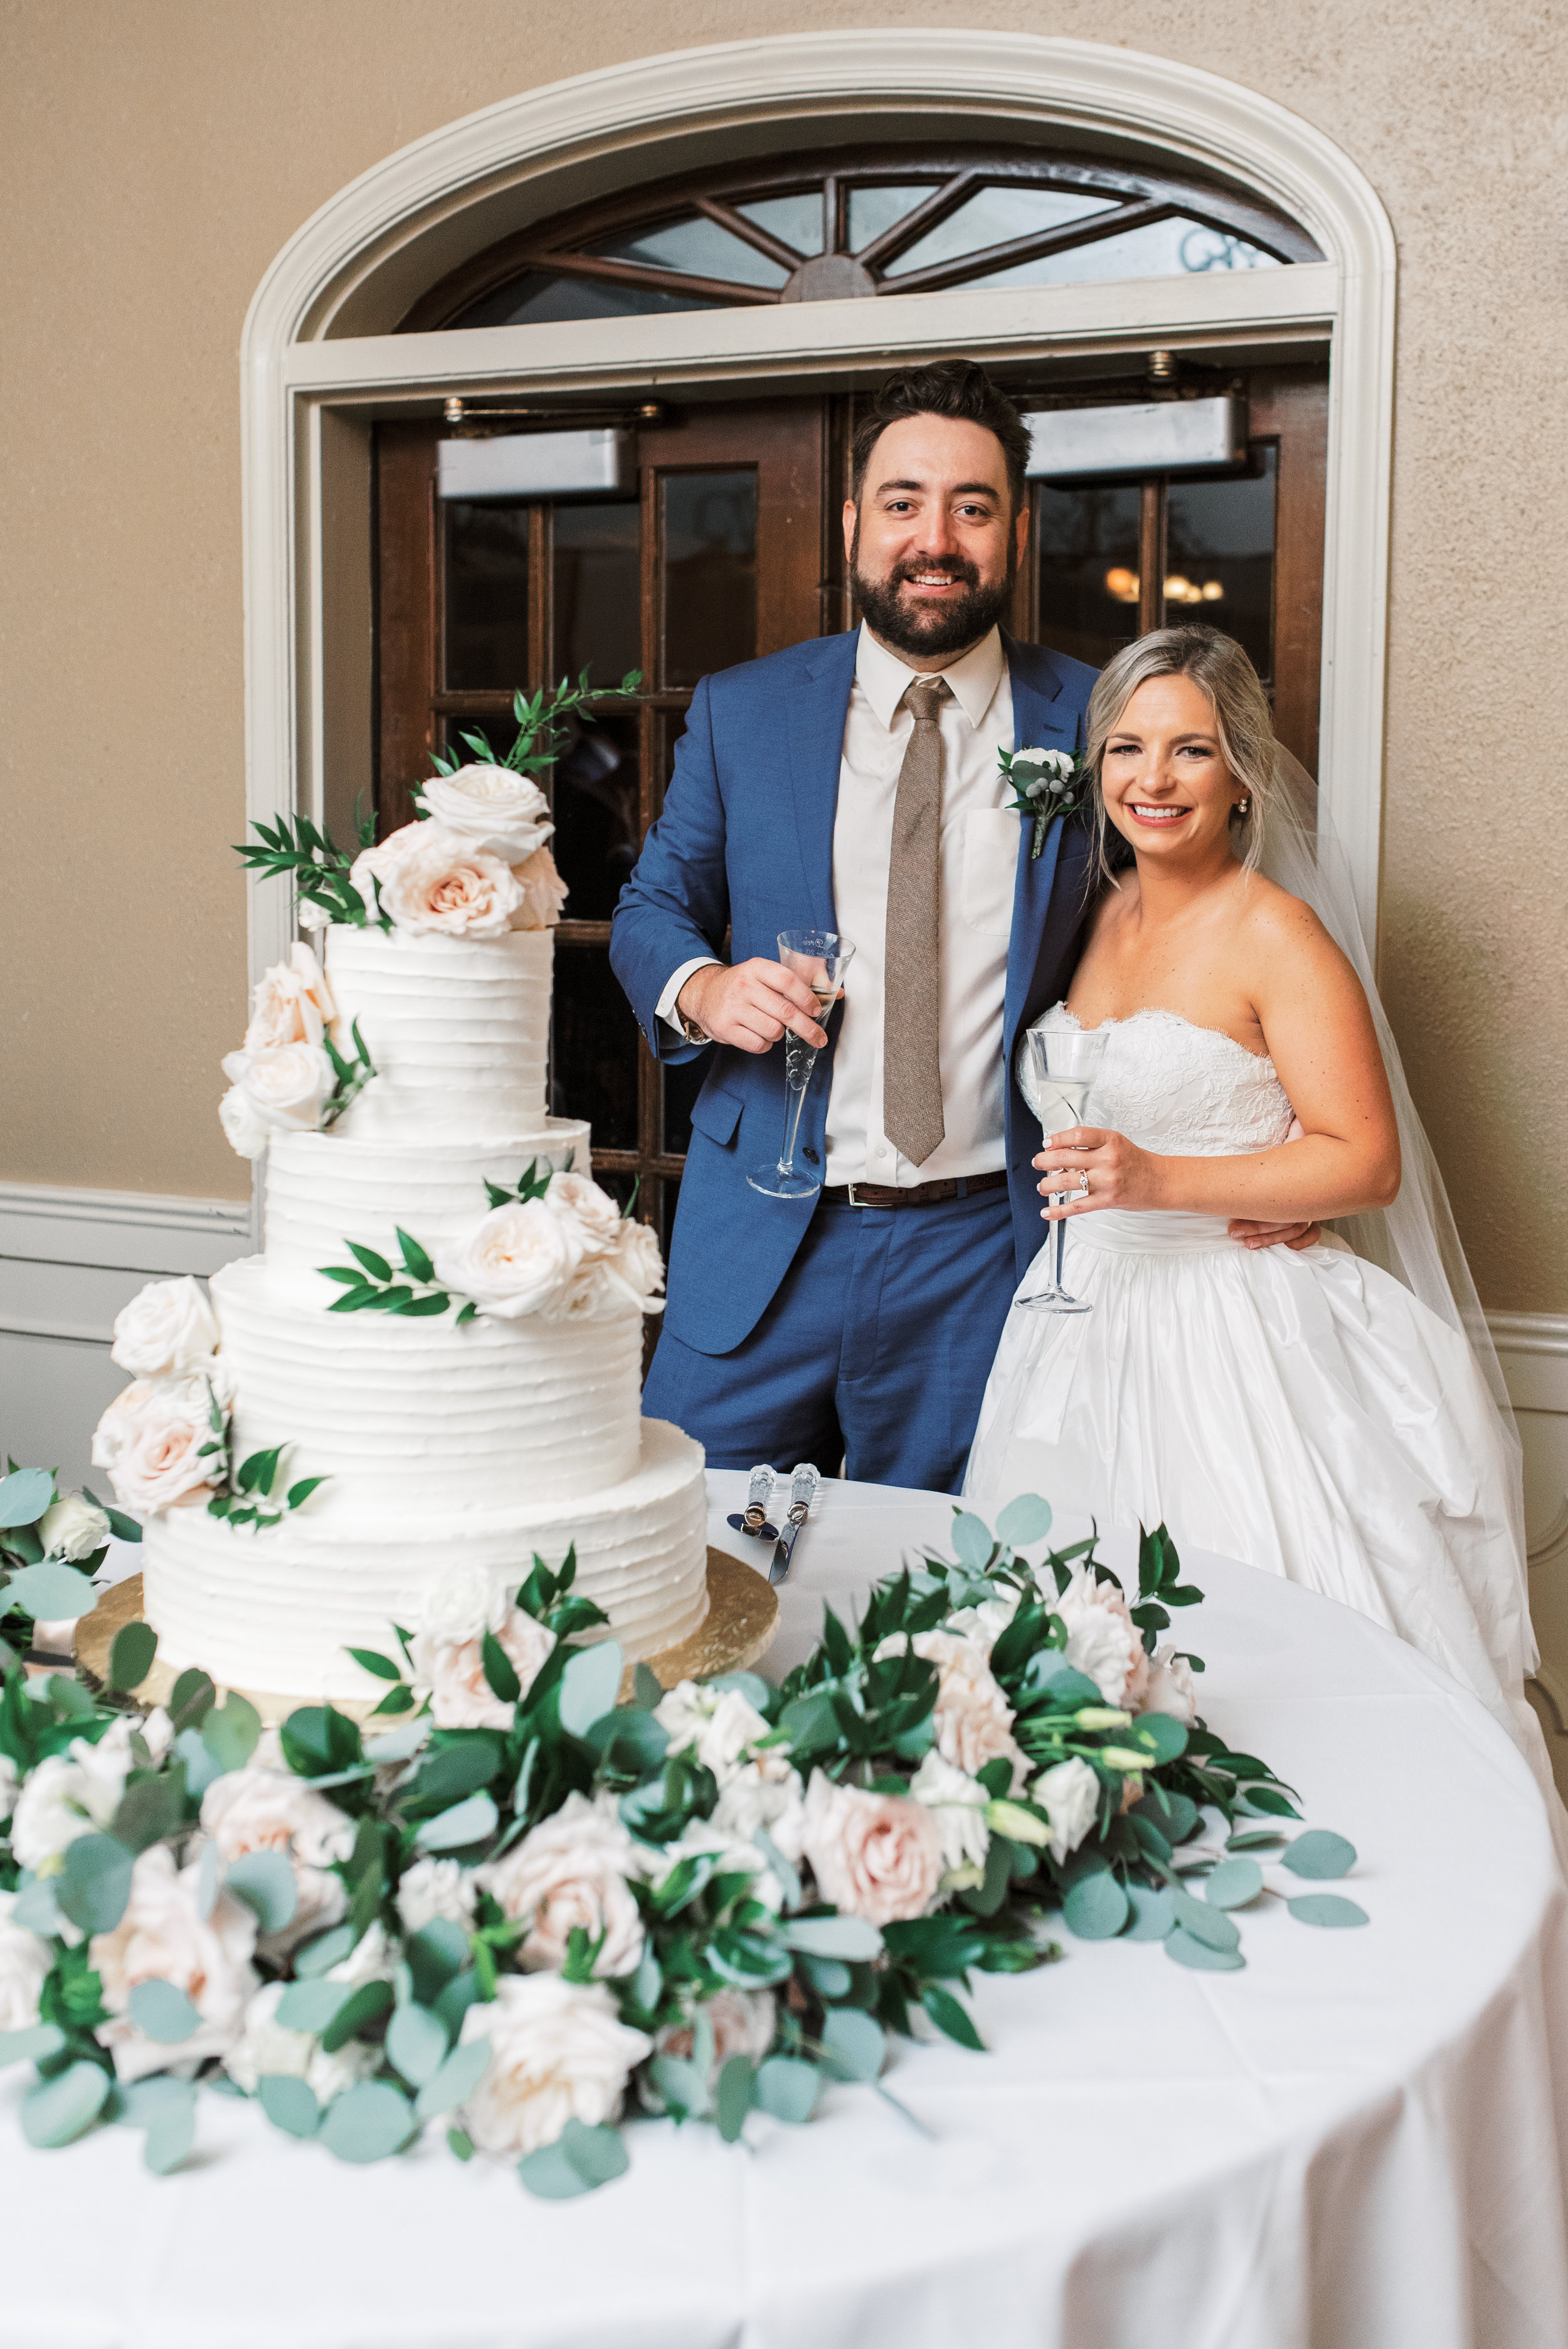 Southern Fete, Southern Wedding, Bride and Groom Champagne Toast, RayRay Cakes, Flowers by Rodney